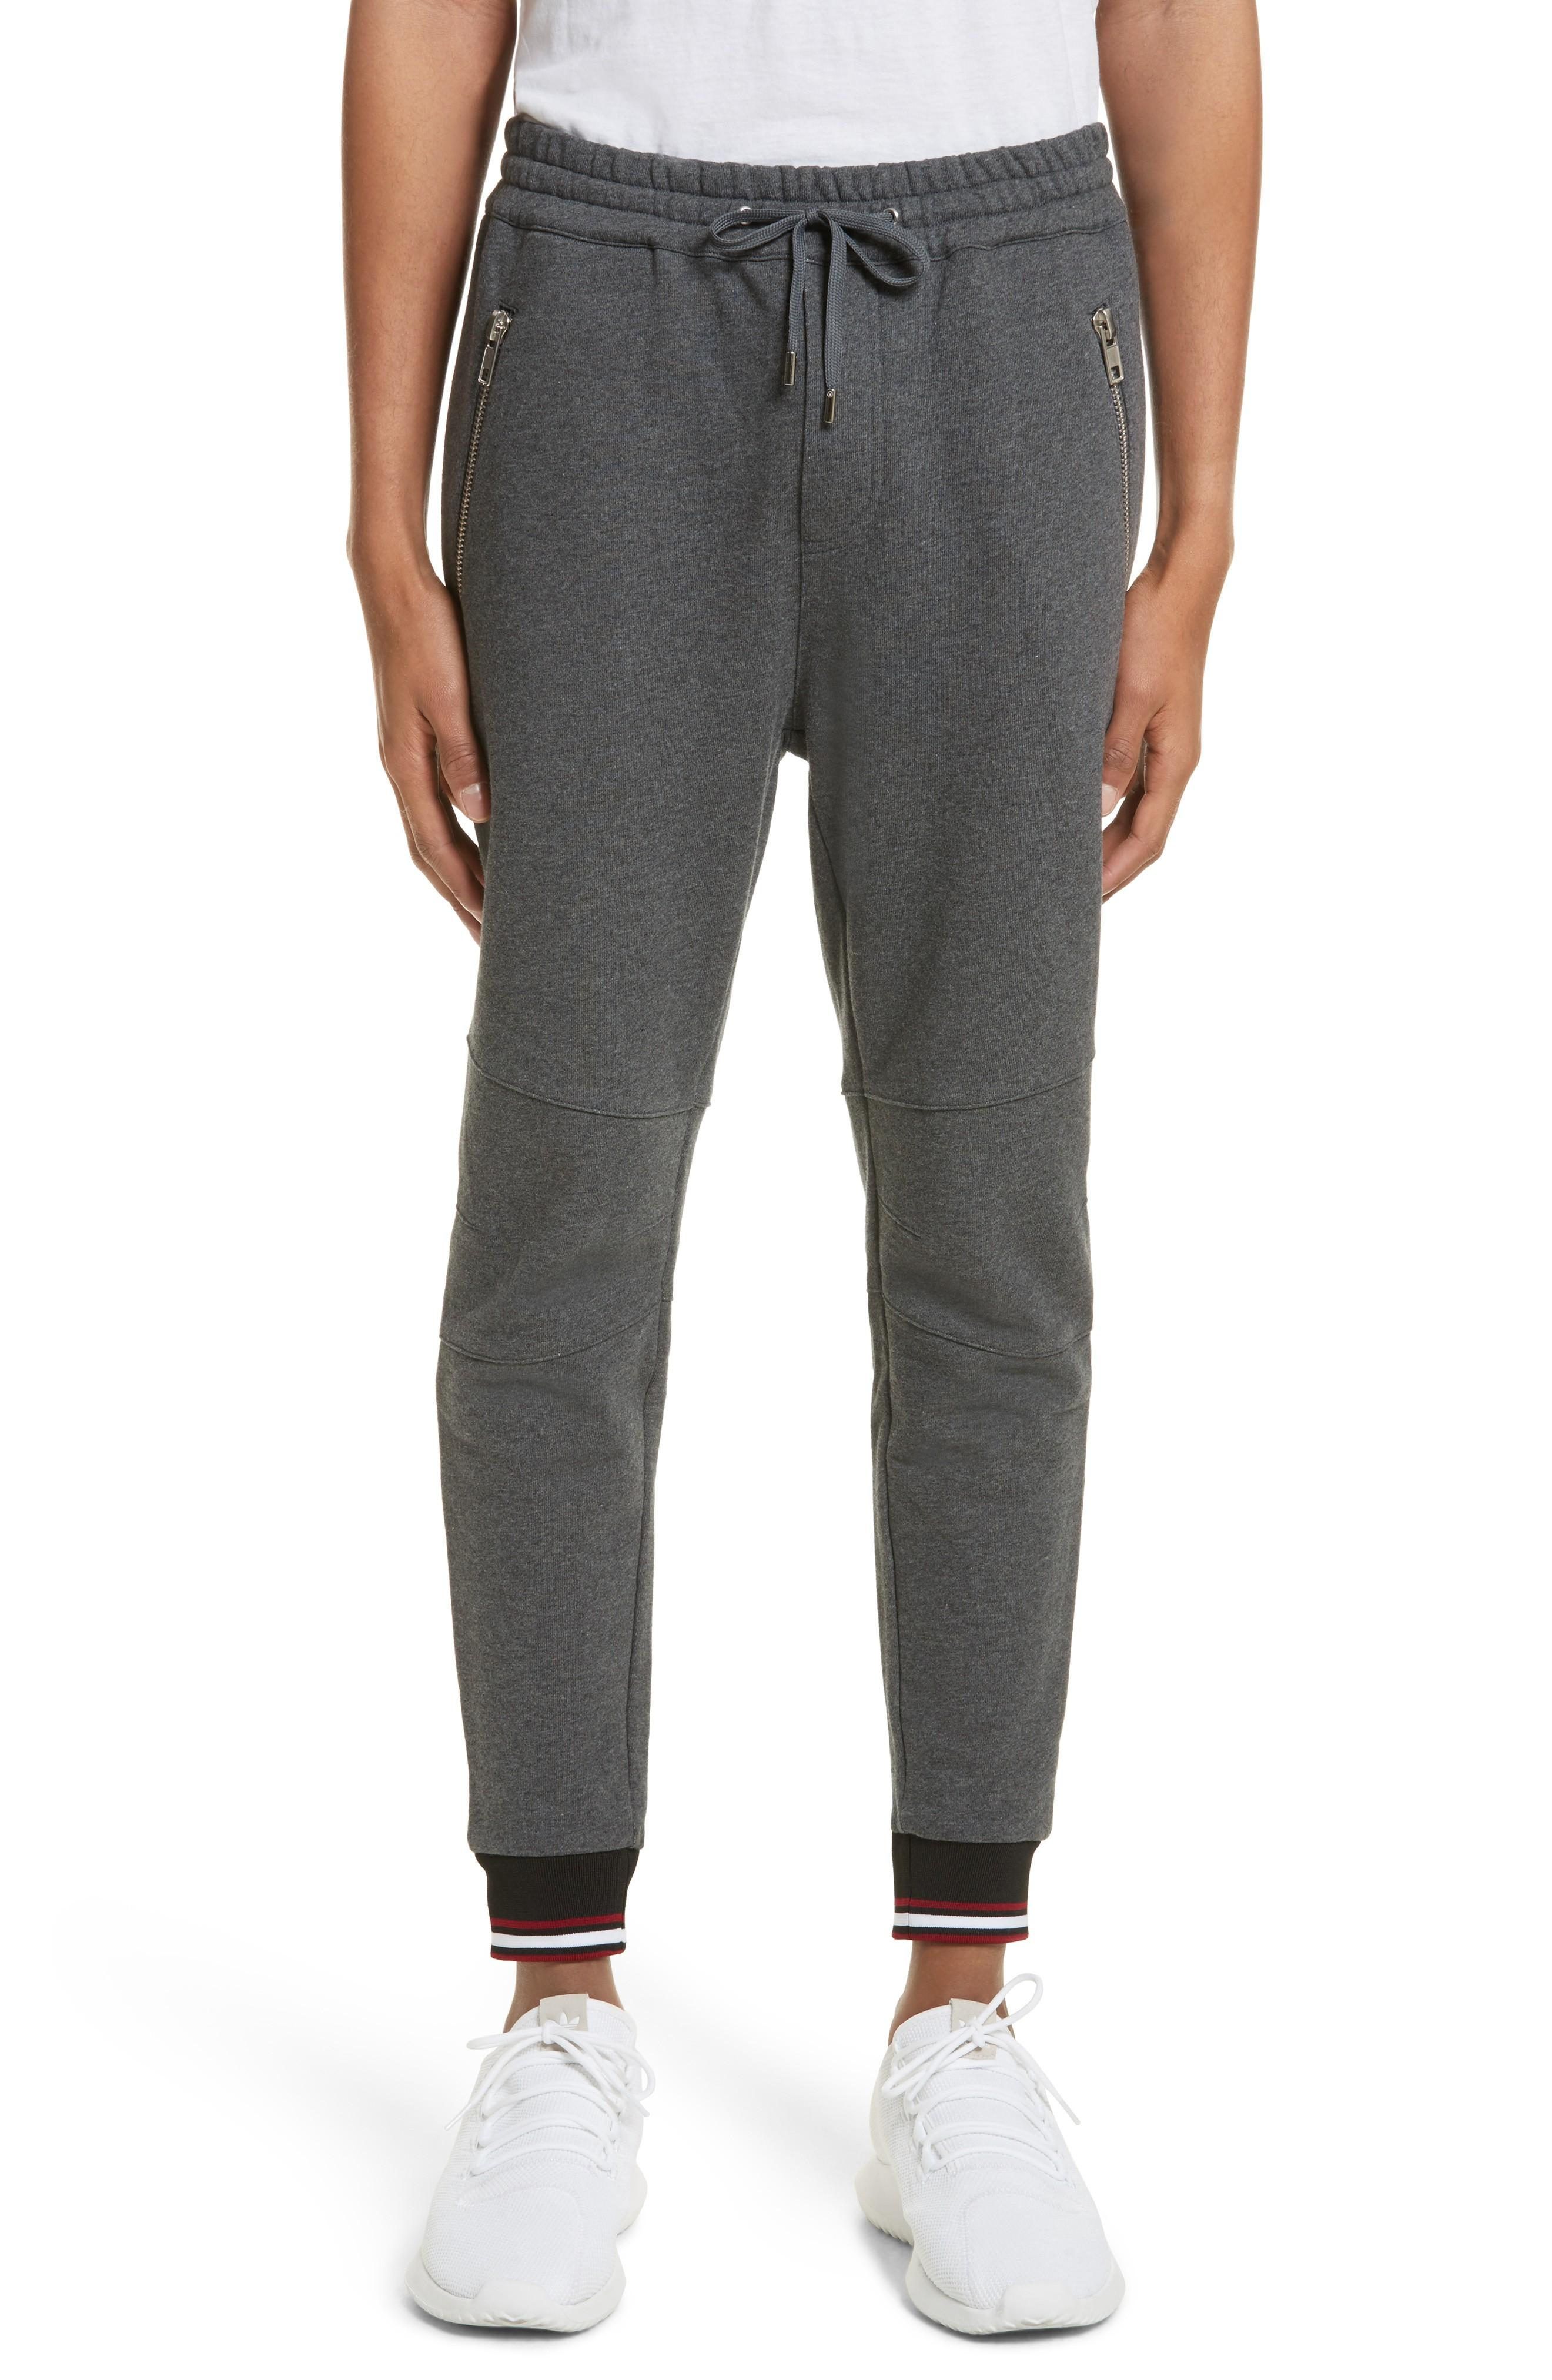 The Kooples Tricolored-cuff Regular Fit Sweatpants In Grey